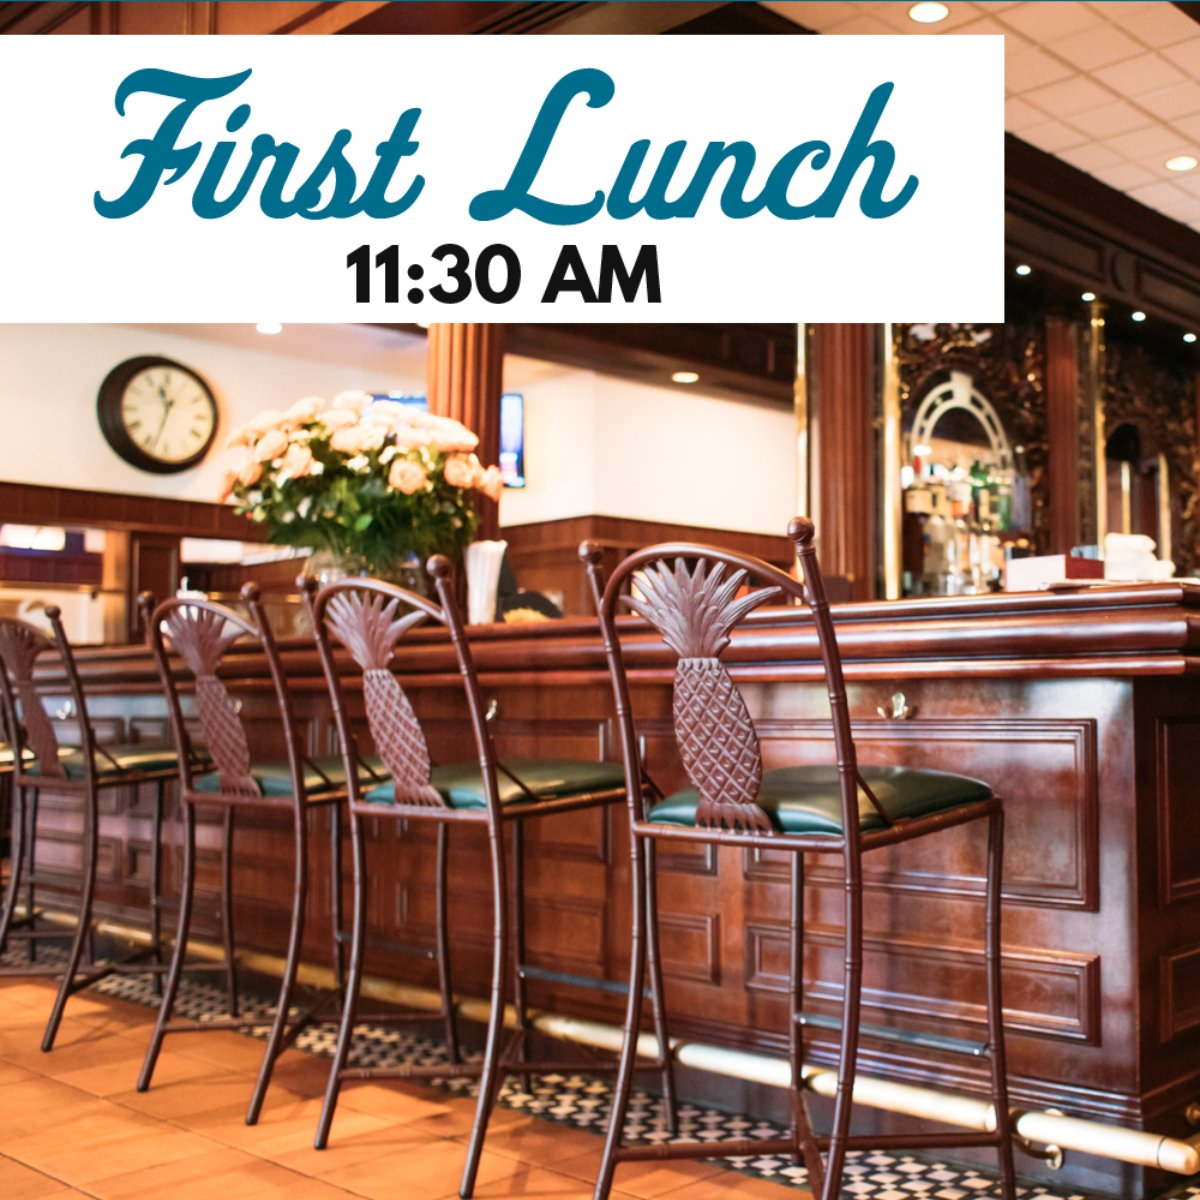 Stop by for our first lunch of the season! Come make new memories with us and share your stories at https://t.co/cD1aOzojha. #joesmemories https://t.co/ZXrtdFxQzq